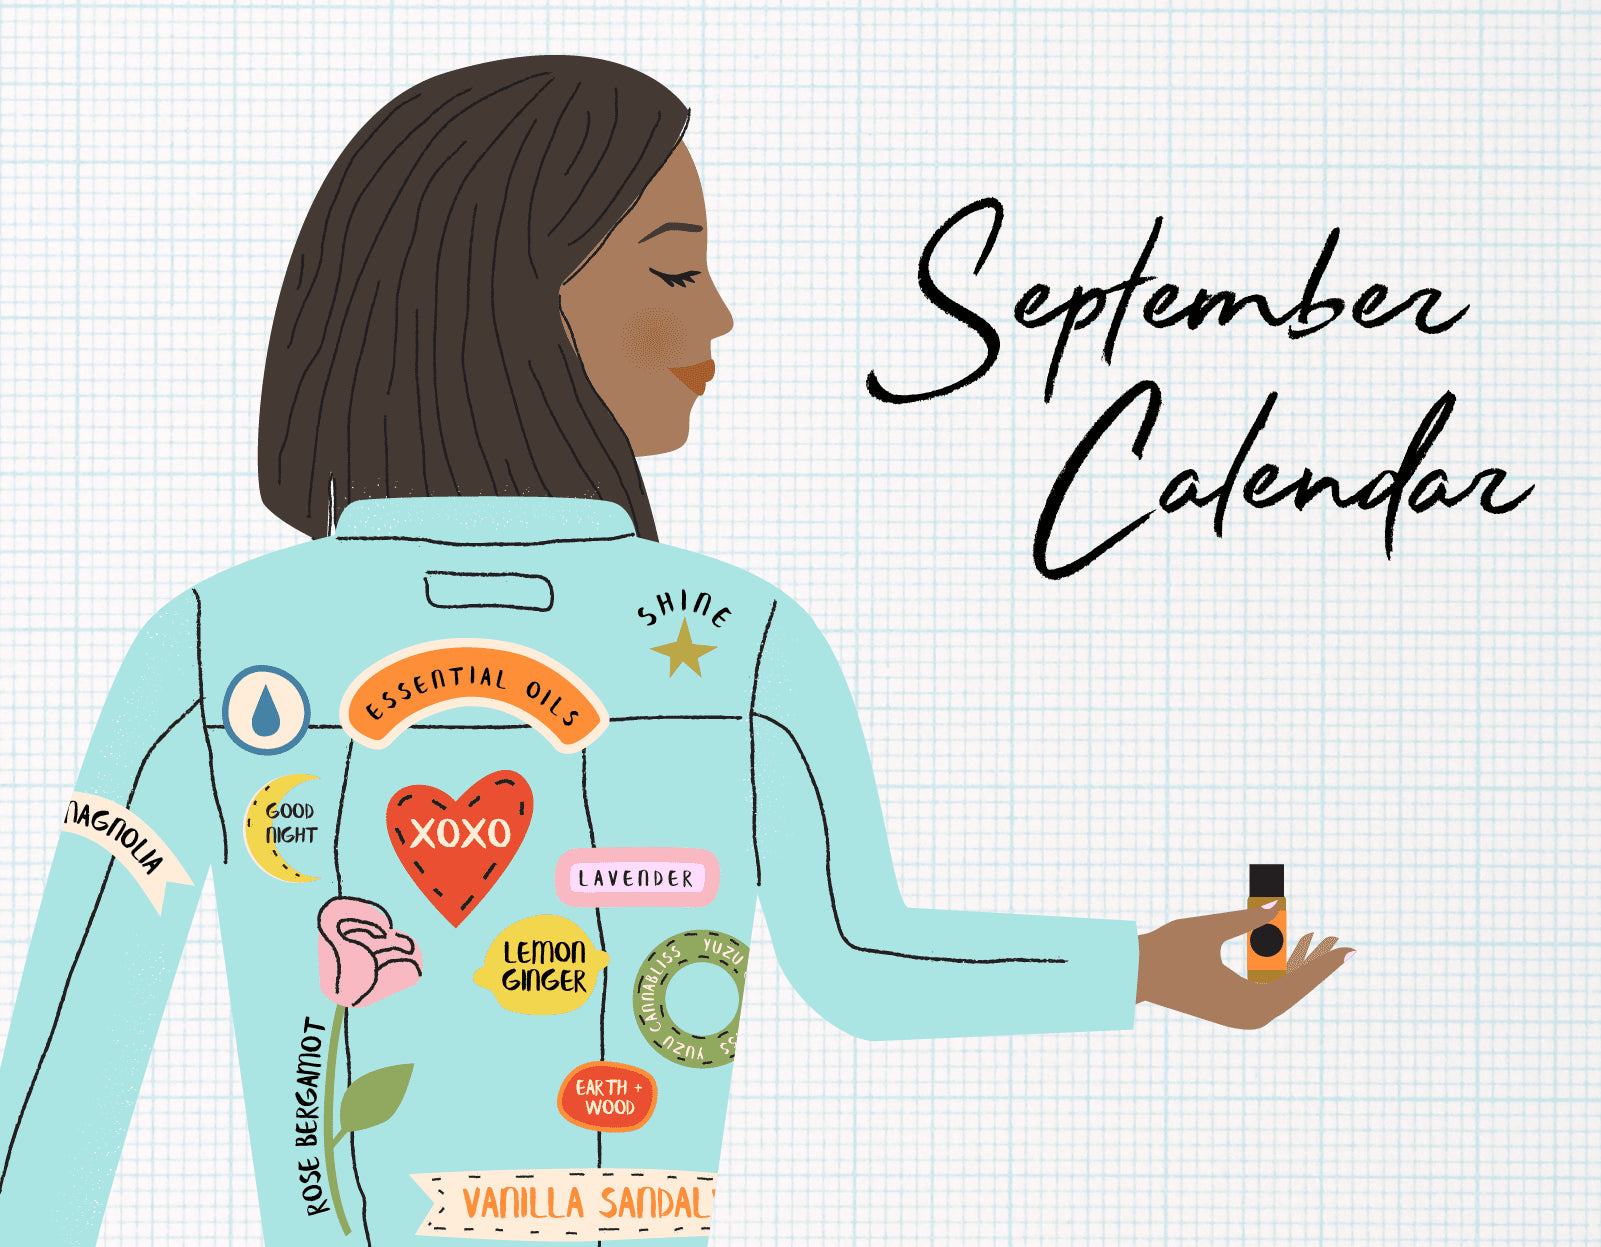 Free September 2018 Calendar Wallpaper